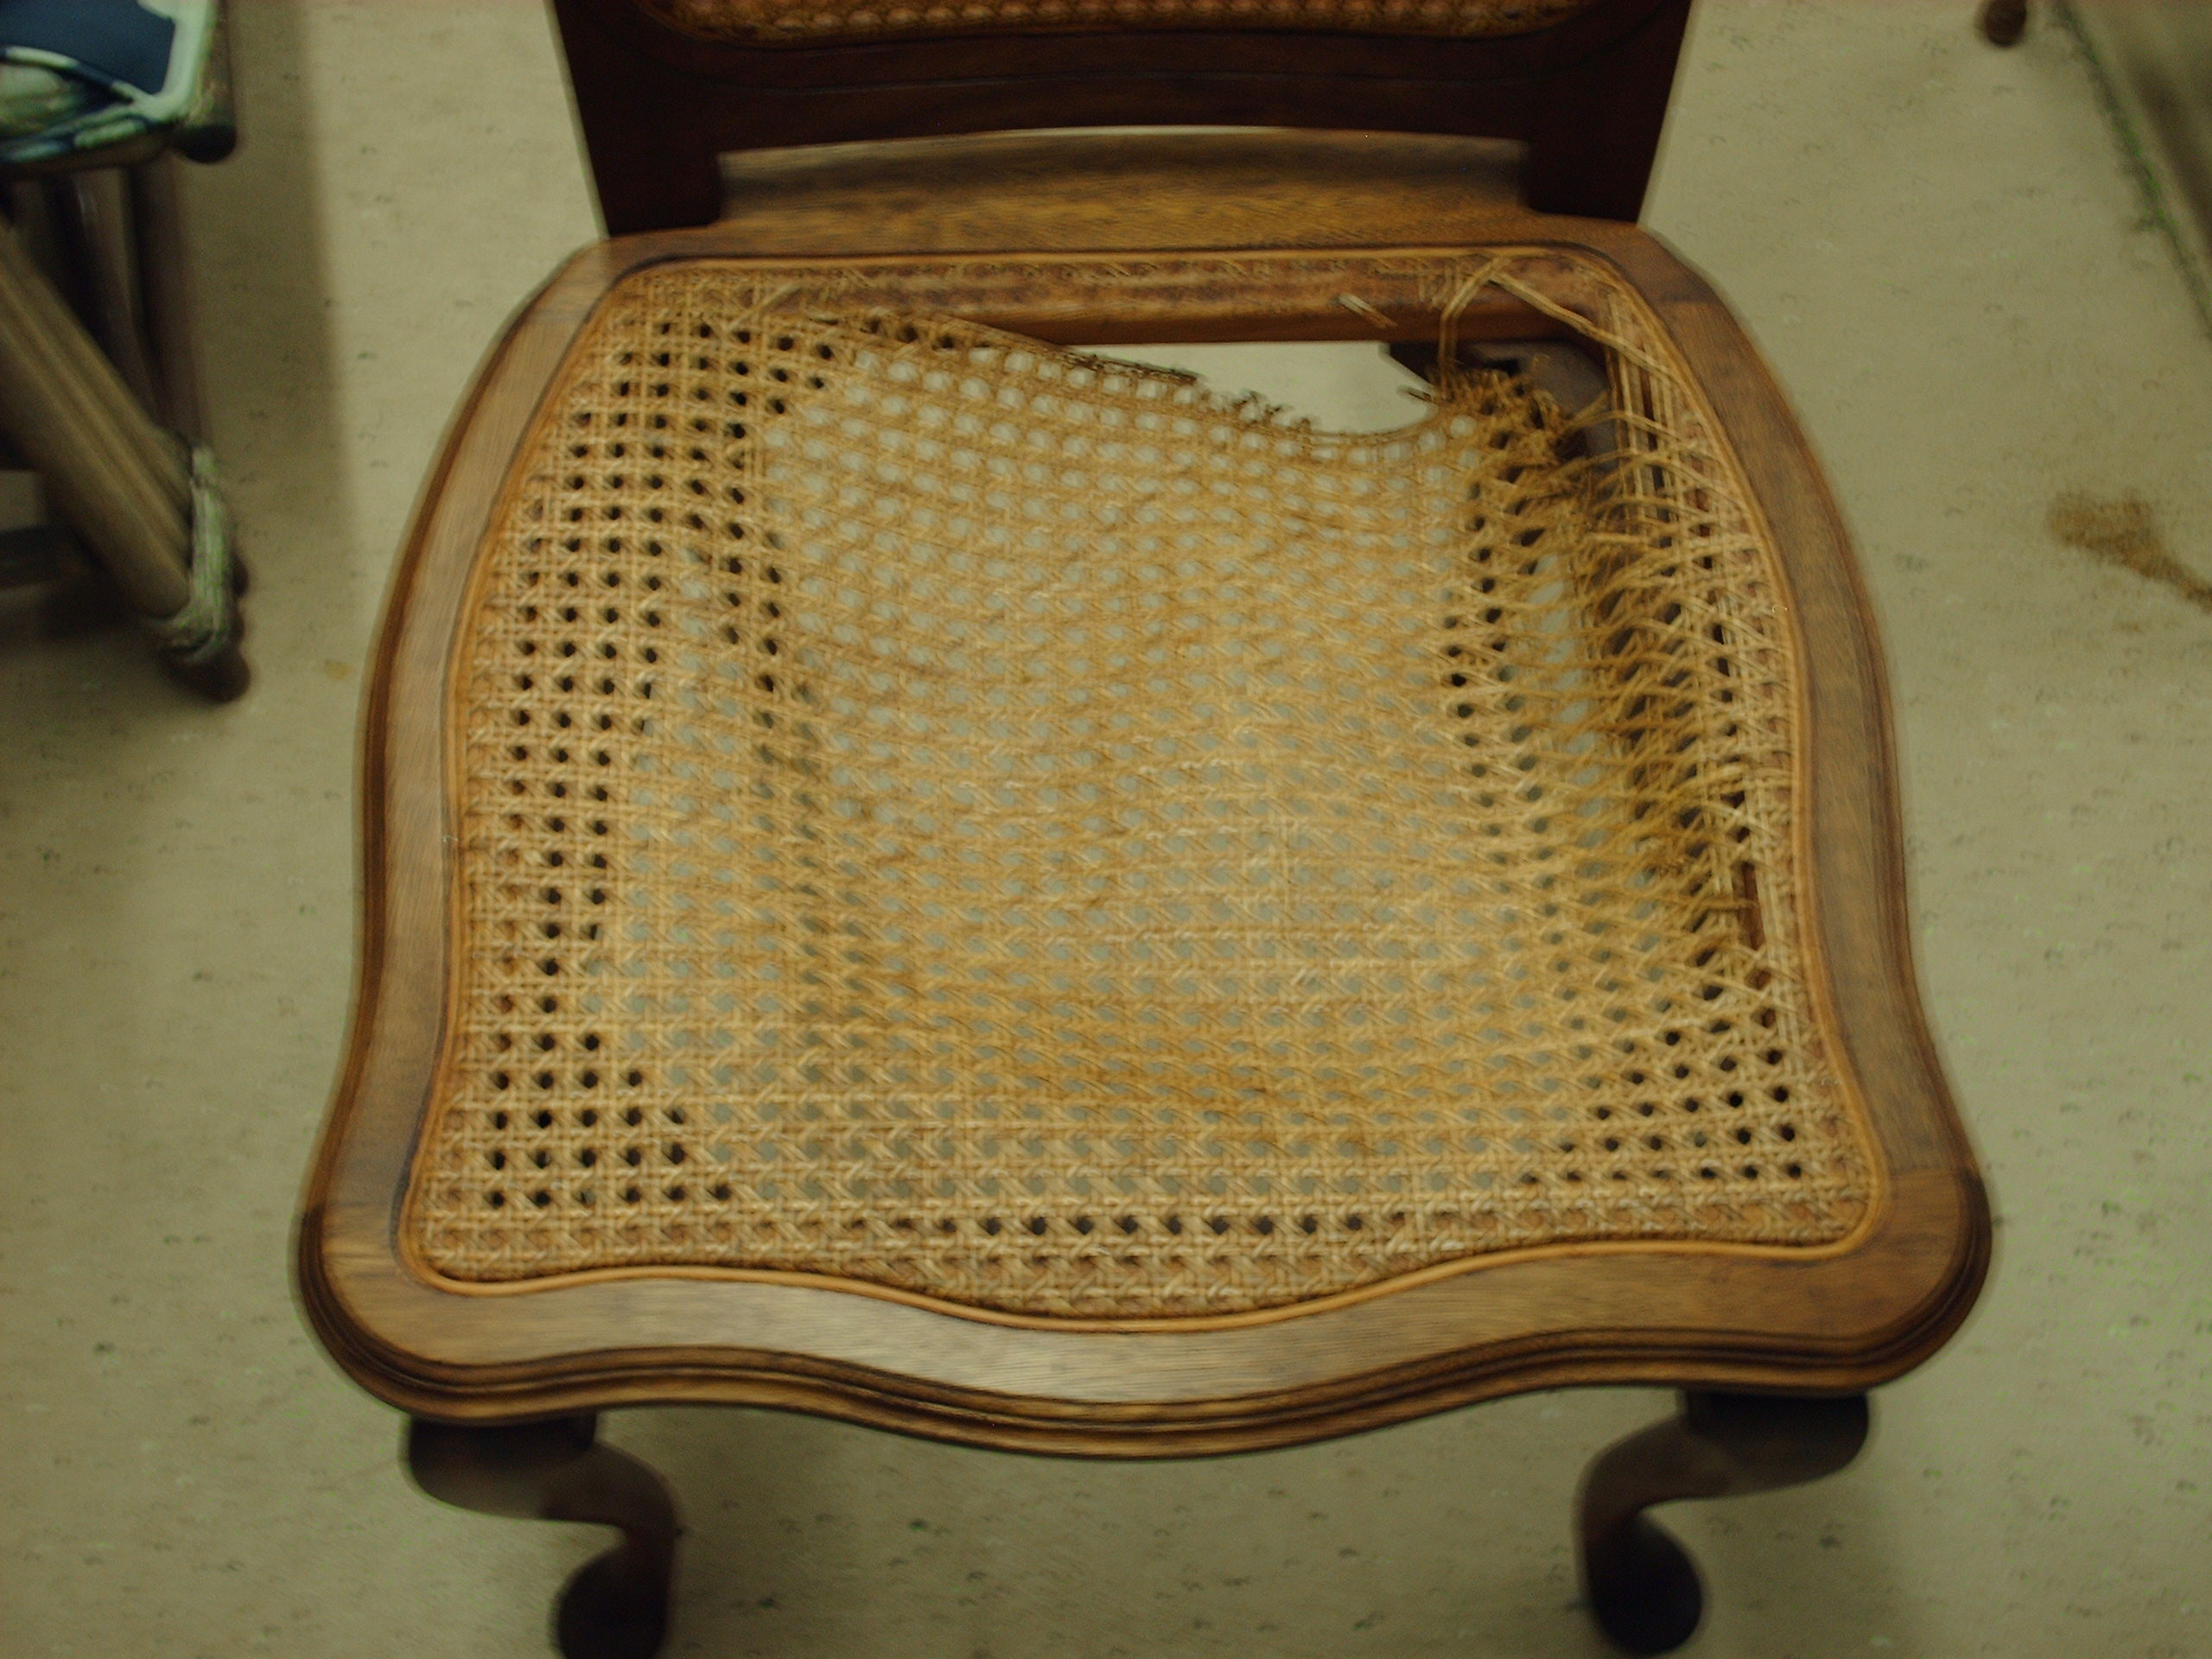 Pressed Cane And Rush Seats This Week Heritage Basket Studio